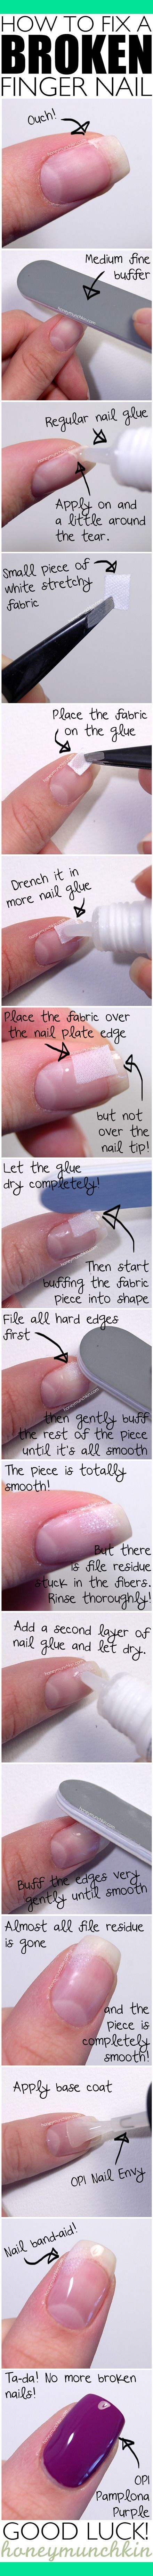 "Tutorial: How to fix a broken finger nail. Not sure what type of ""stretchy fabric"" they're advocating,but I'd recommend using either a fiberglass wrap fabric,or silk wrap.Both are available in most drug stores.A pro repair is always the most effective solution,but this can get you by! ;o)"